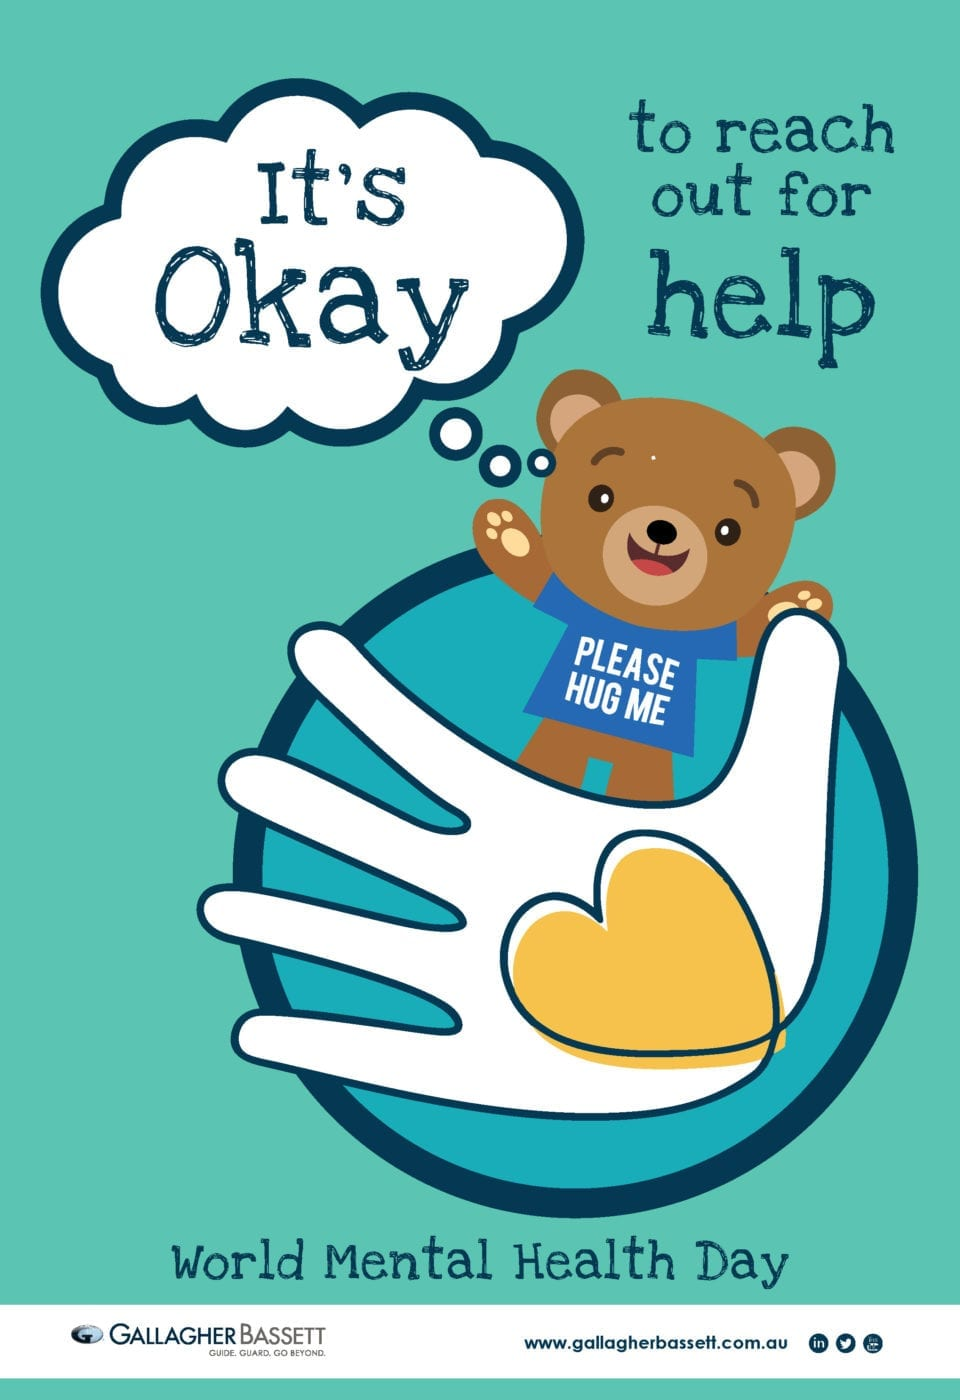 Poster - It's Okay to Reach Out for Help - Gallagher Bassett